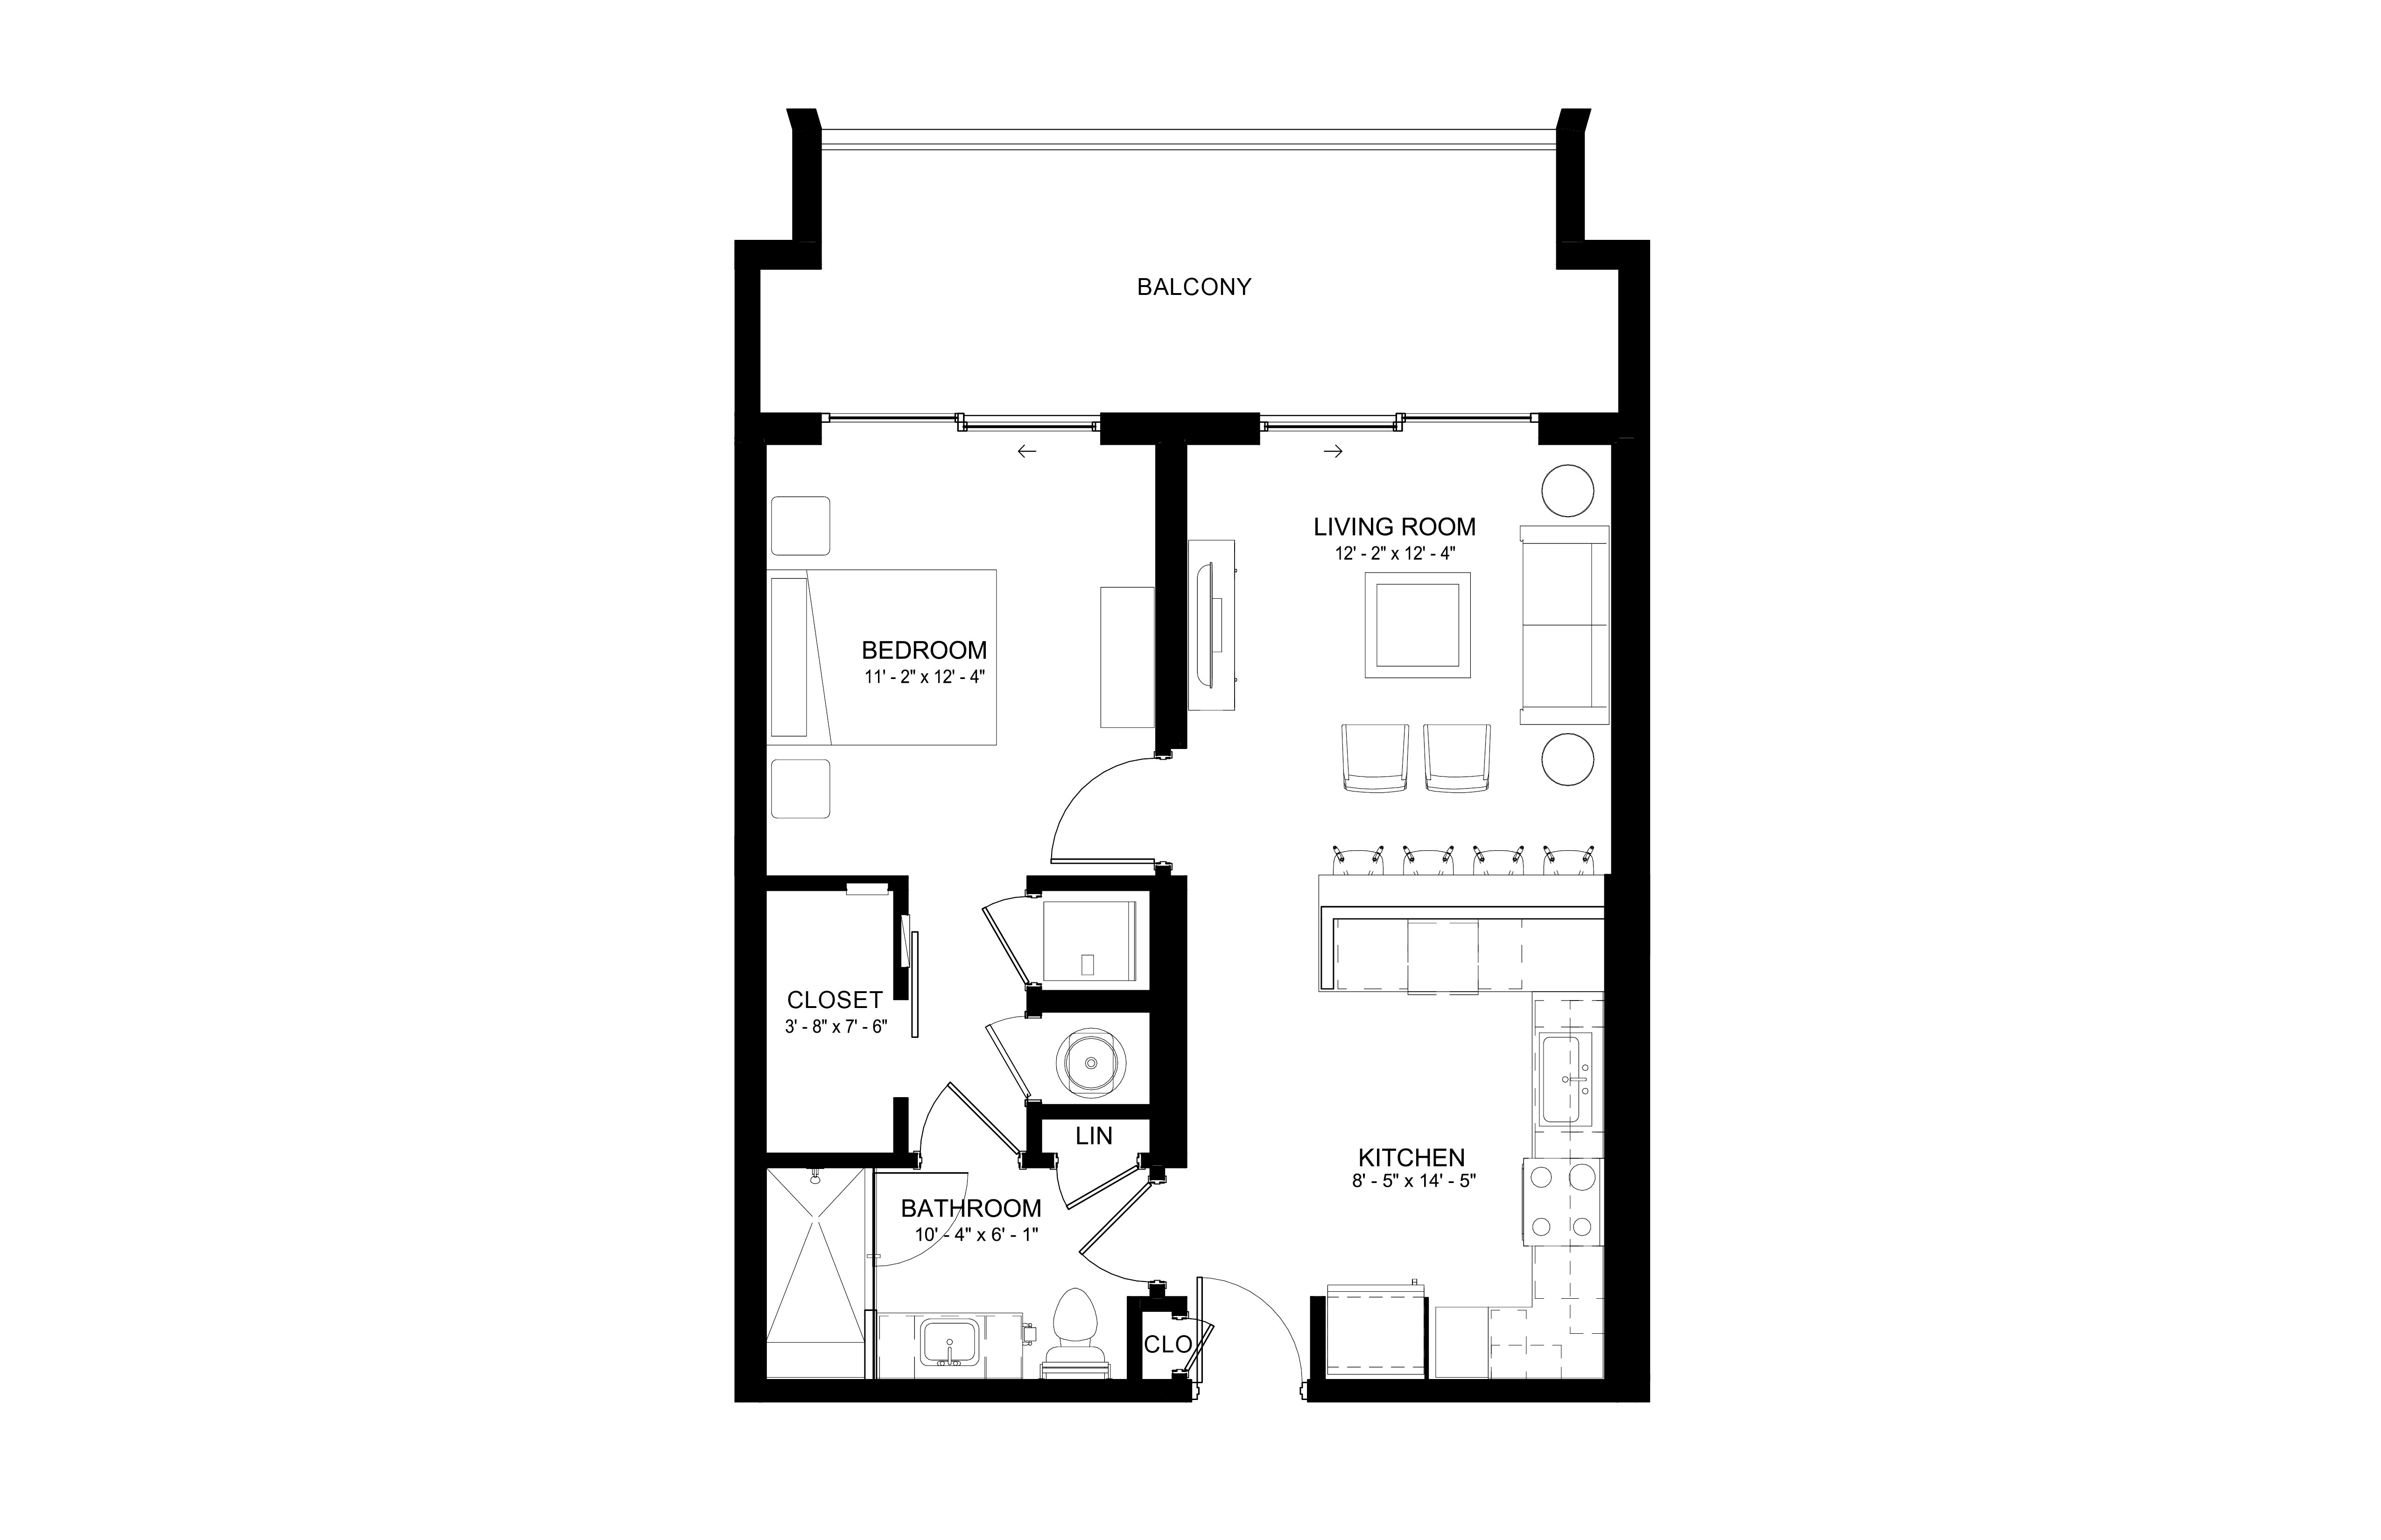 Apartment 308 floorplan